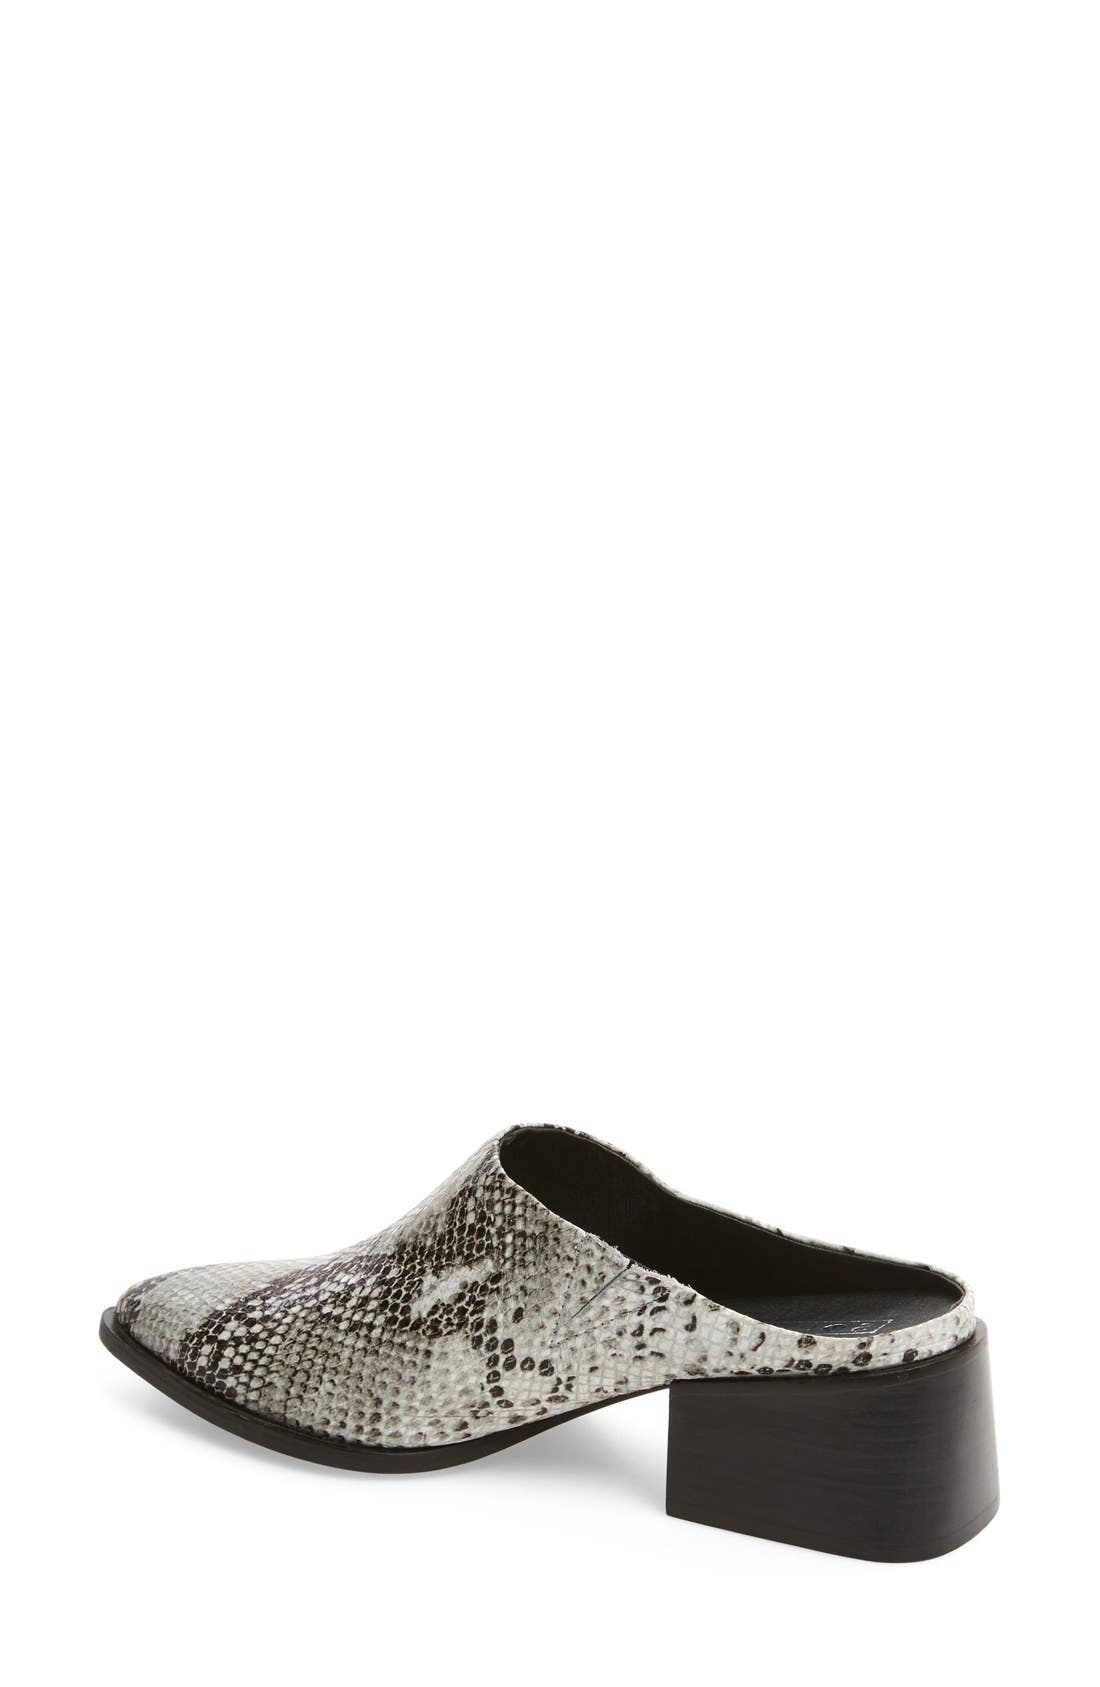 Camille Pointy Toe Mule,                             Alternate thumbnail 2, color,                             Natural Snake Print Leather